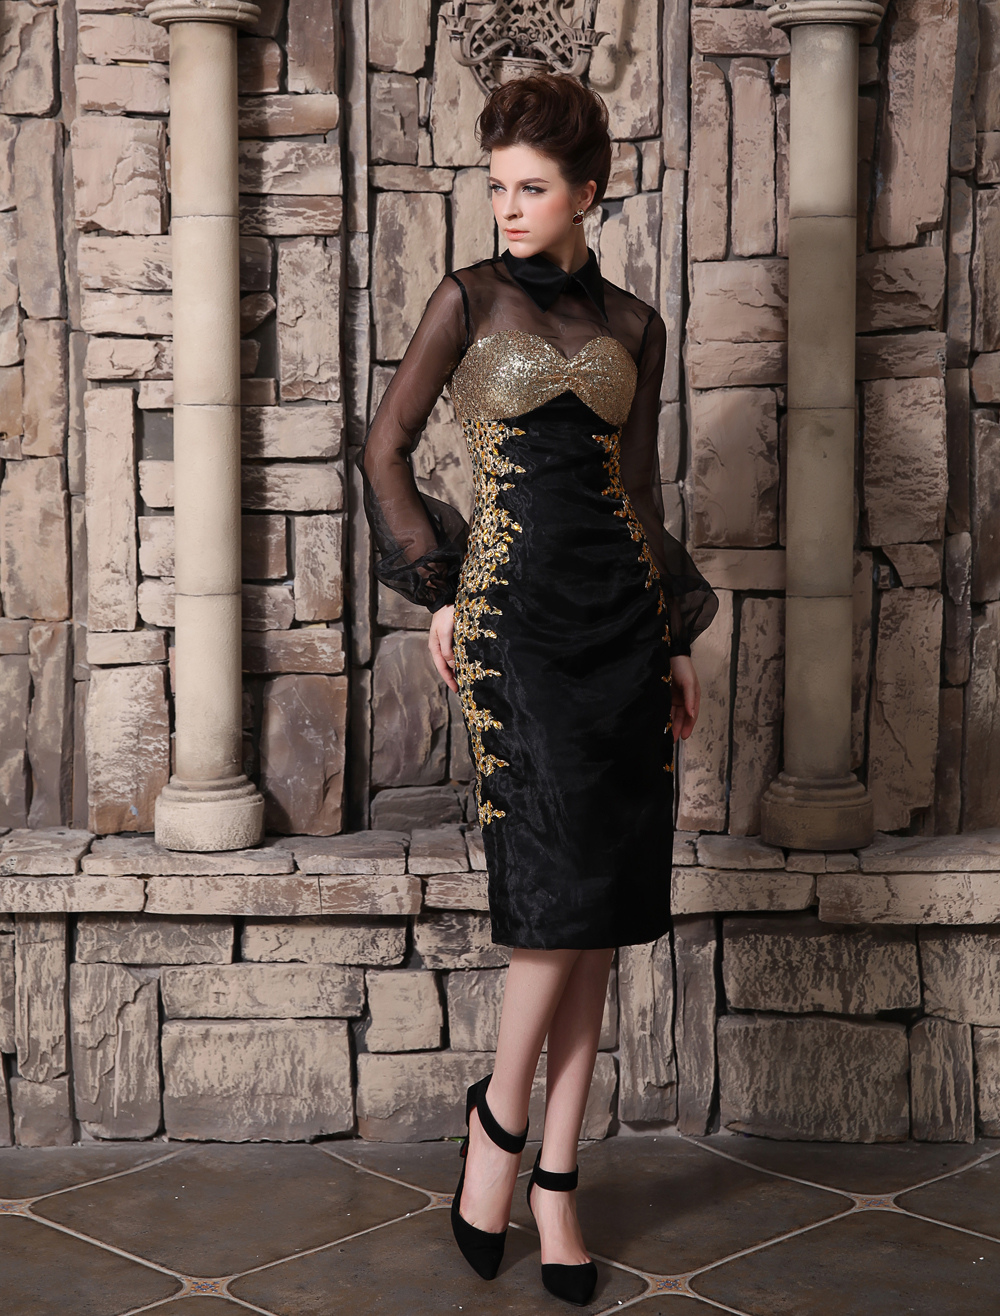 Buy Black Beading Cowl Neck Long Sleeves Sheath Organza Cocktail Dress Wedding Guest Dress Milanoo for $141.29 in Milanoo store